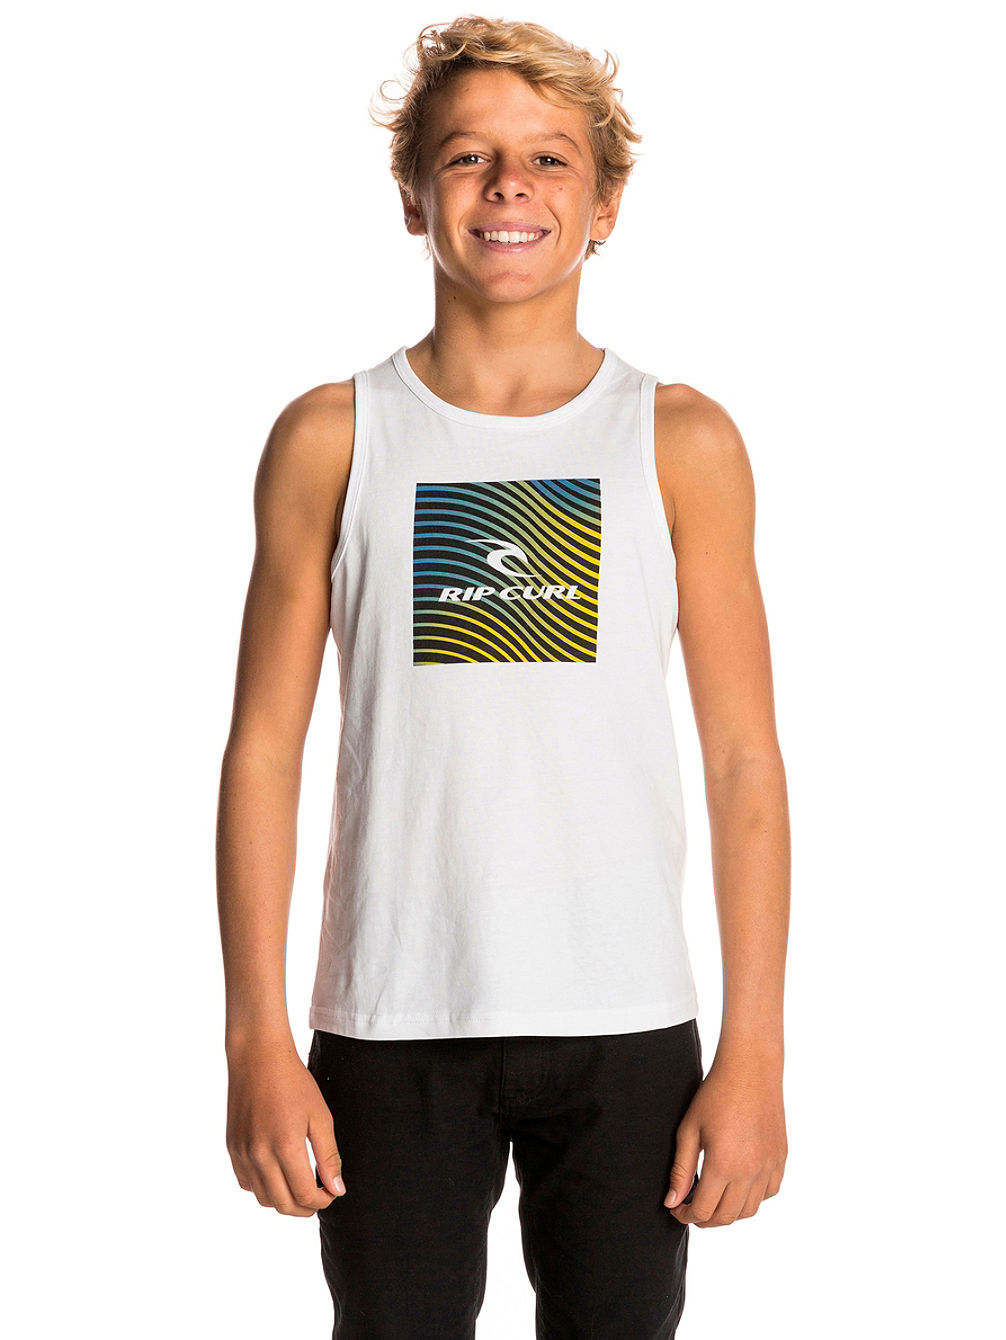 Photoprint Tank Top Boys